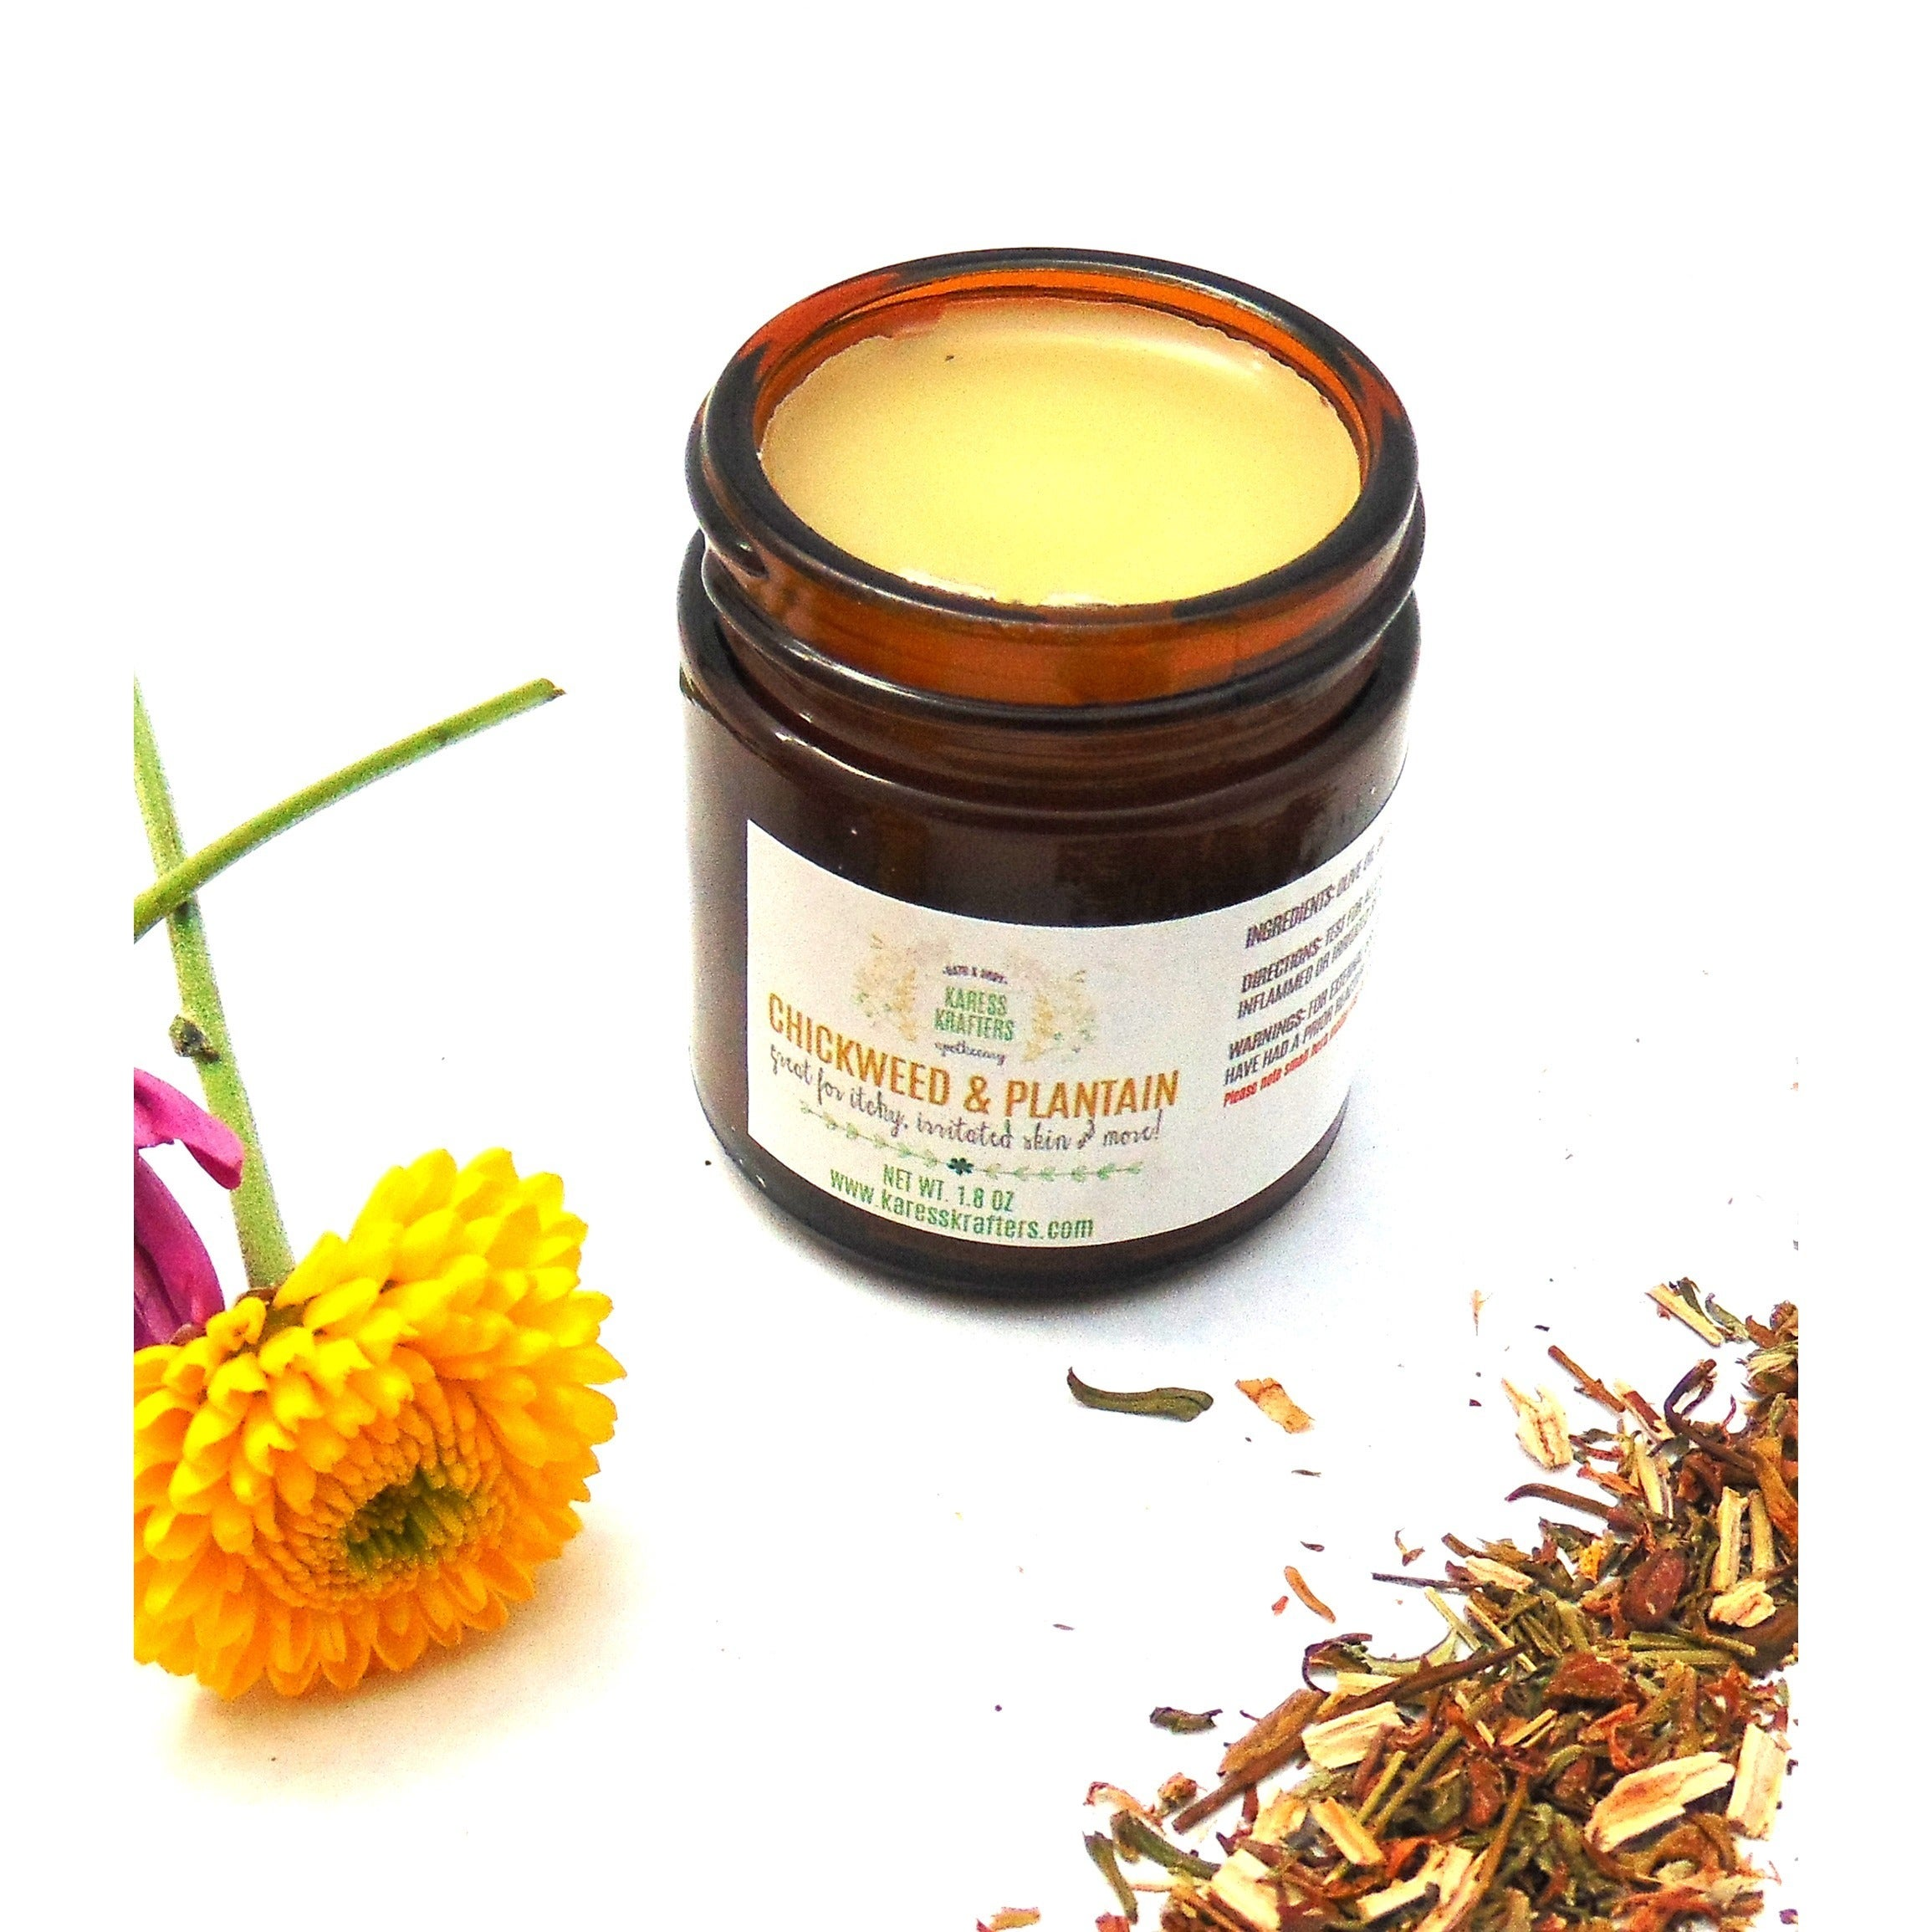 Chickweed & Plantain Salve, 100% Natural with Healing Her...